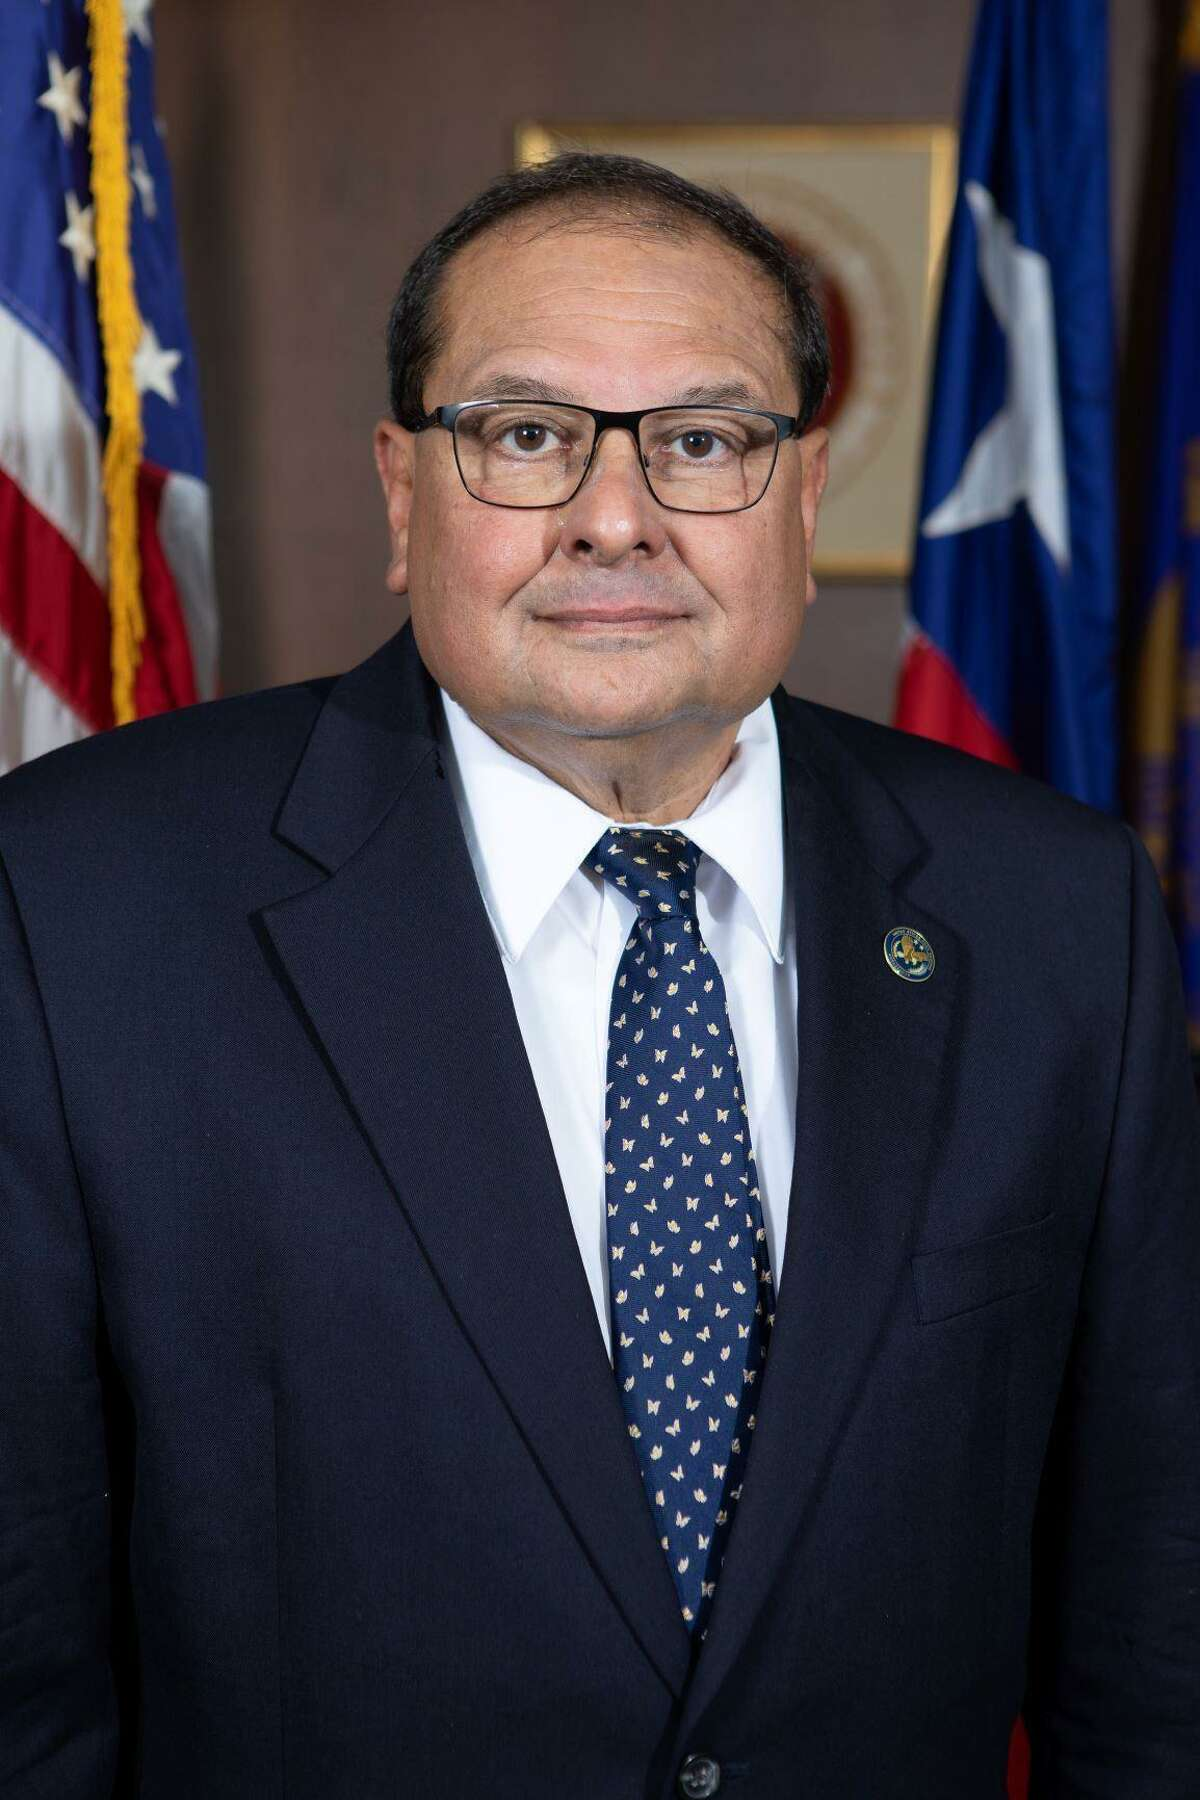 Windcrest City Councilman Frank Archuleta